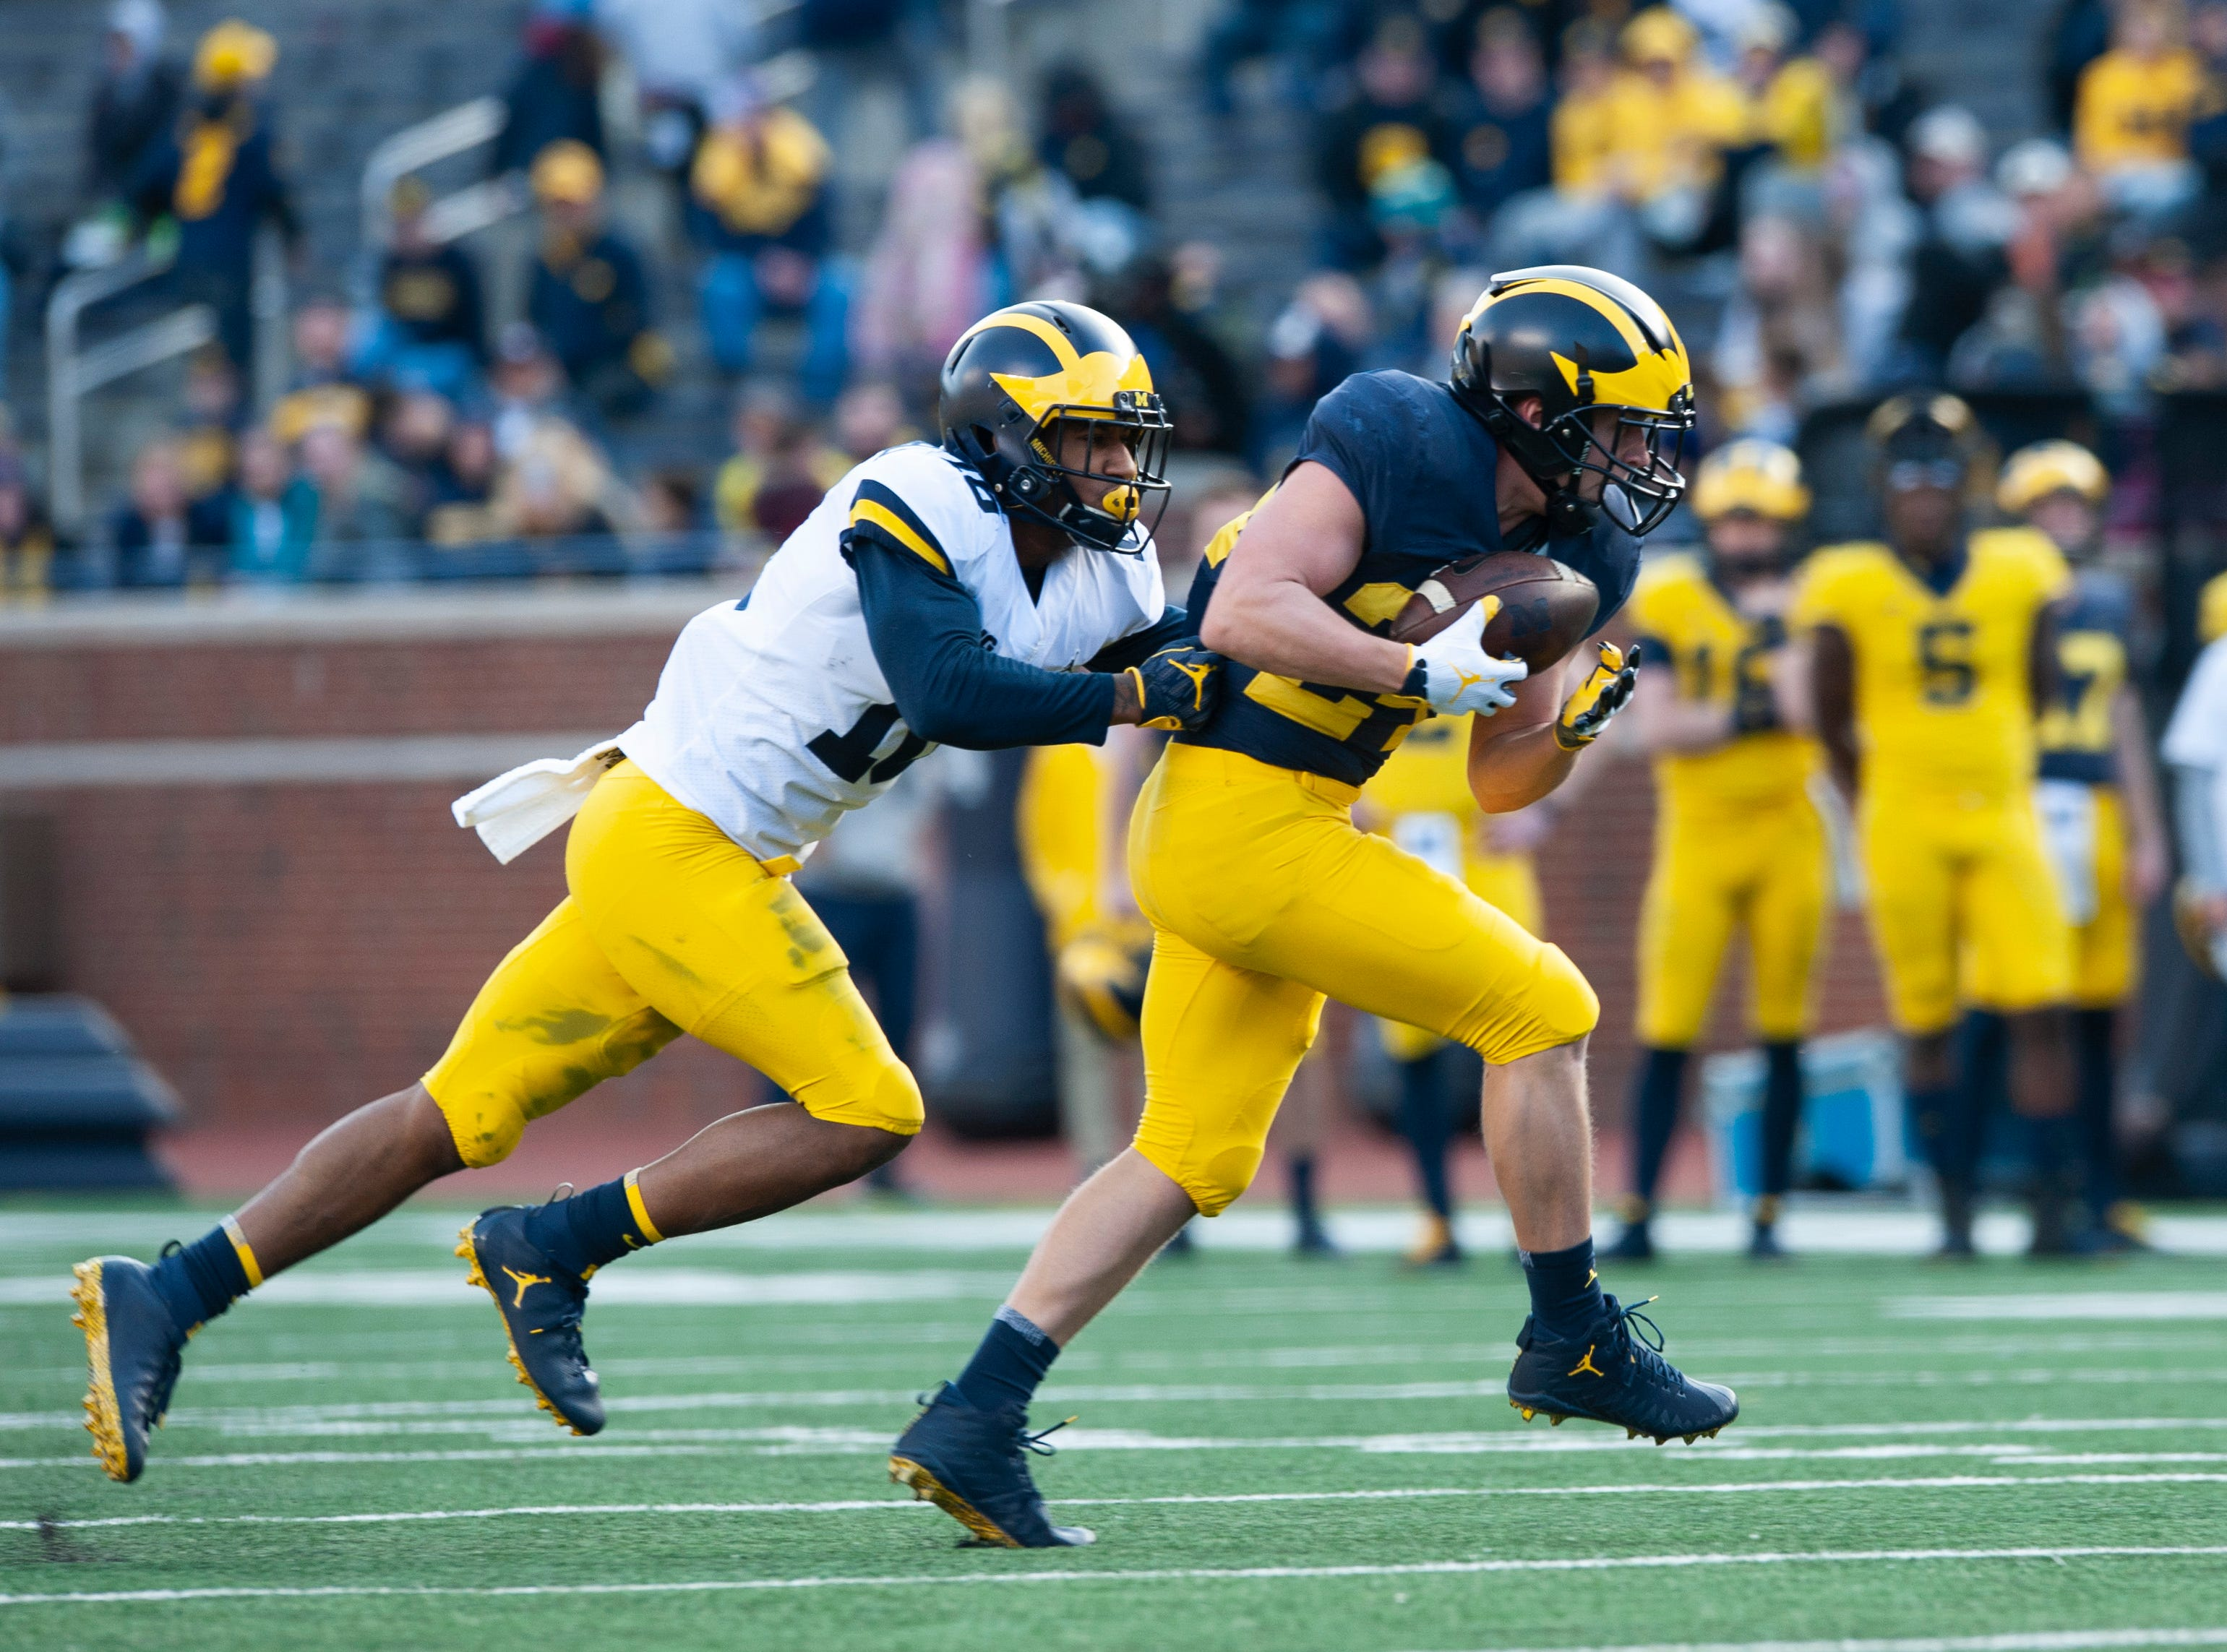 Michigan WR Jake Martin picks up some extra yardage after catching a pass before being tackled by Jalen Kelly-Powell (16).